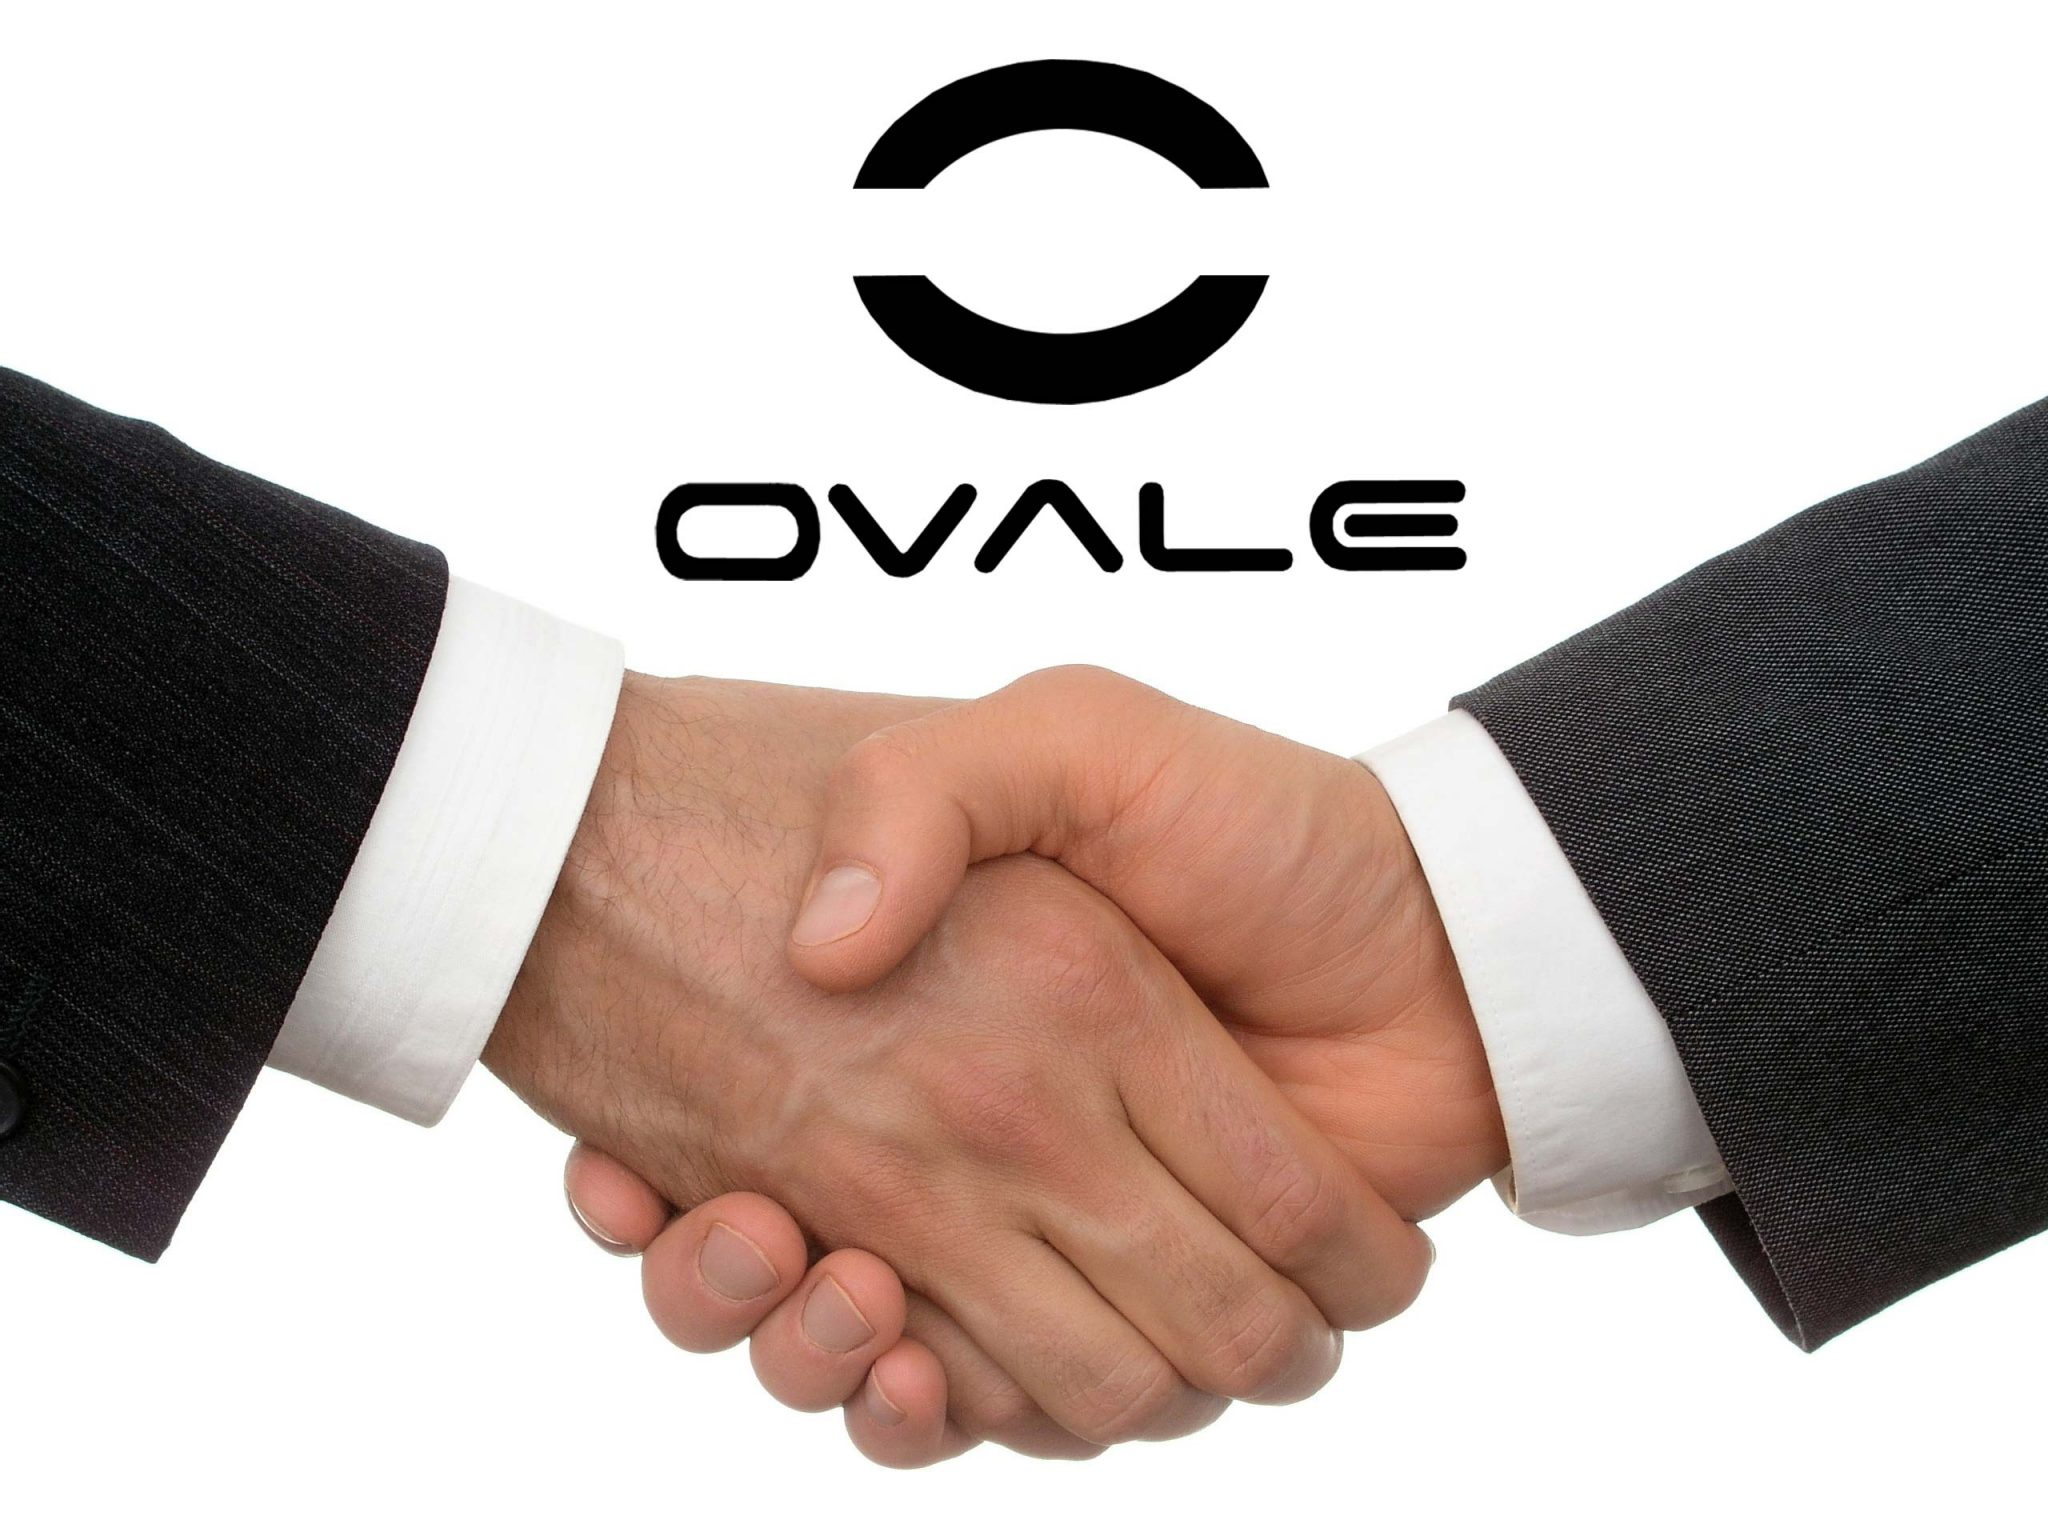 Ovale production Image